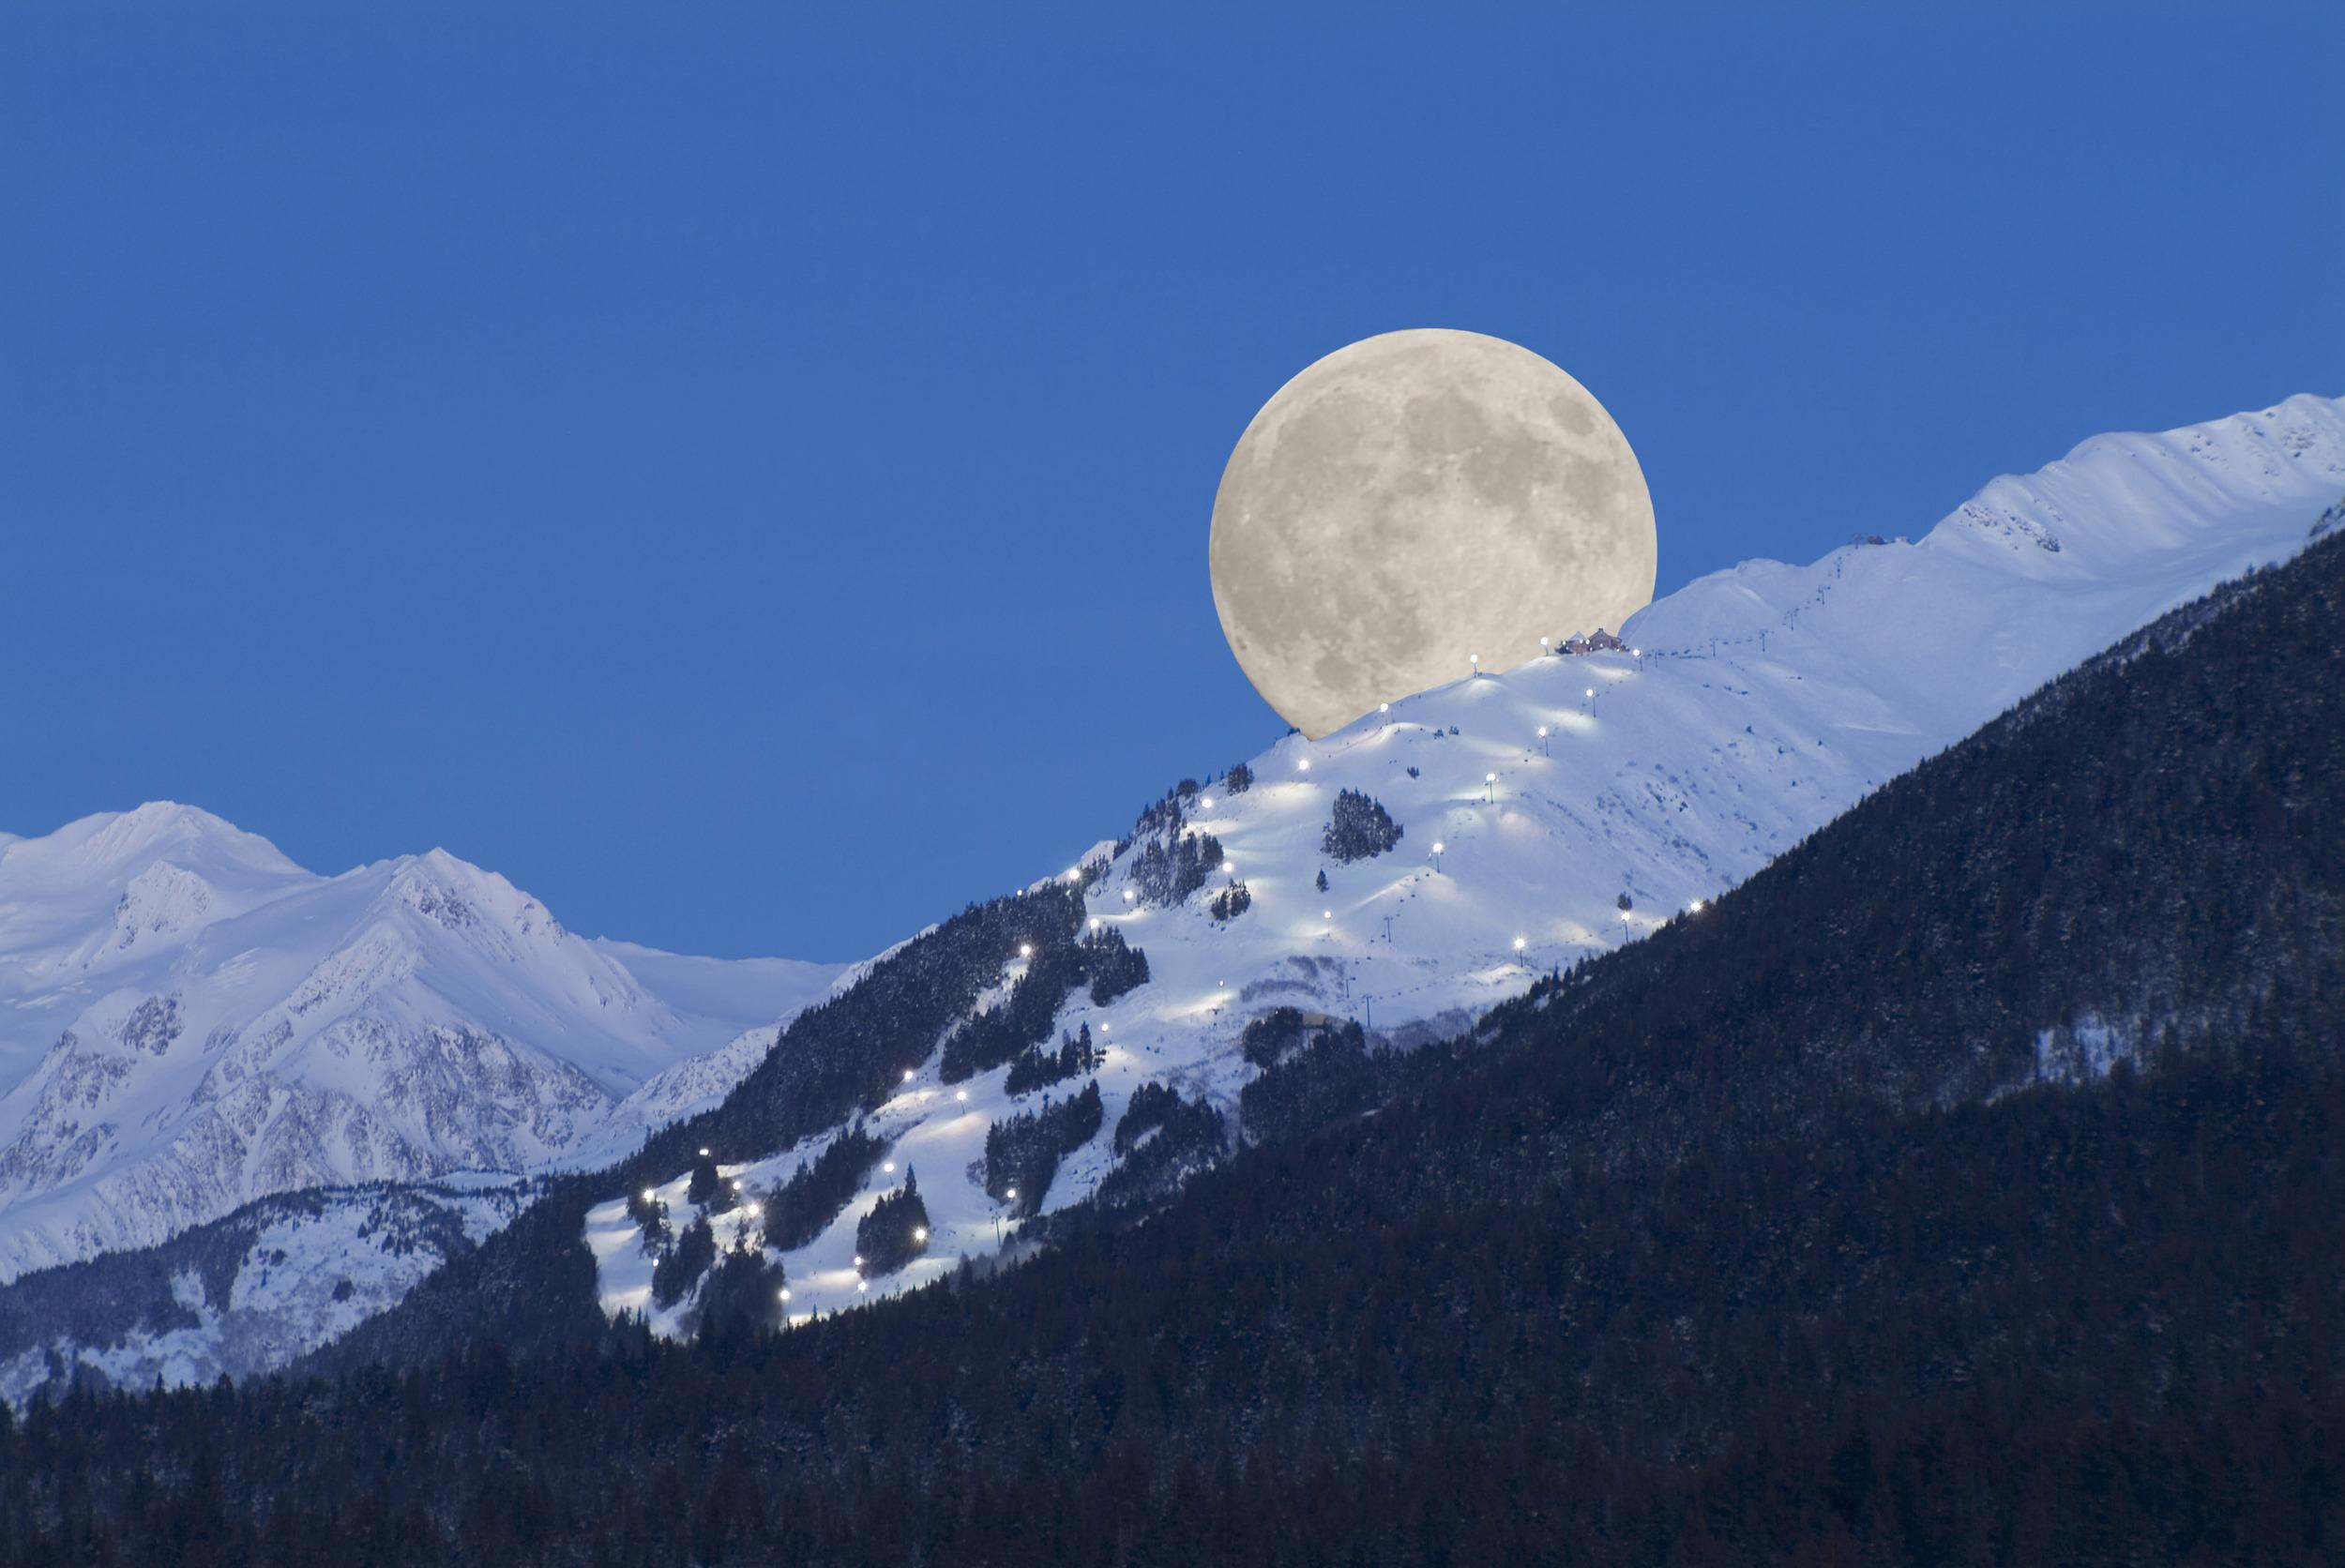 Full moon rising over the Alyeska ski resort in Alaska, USA.